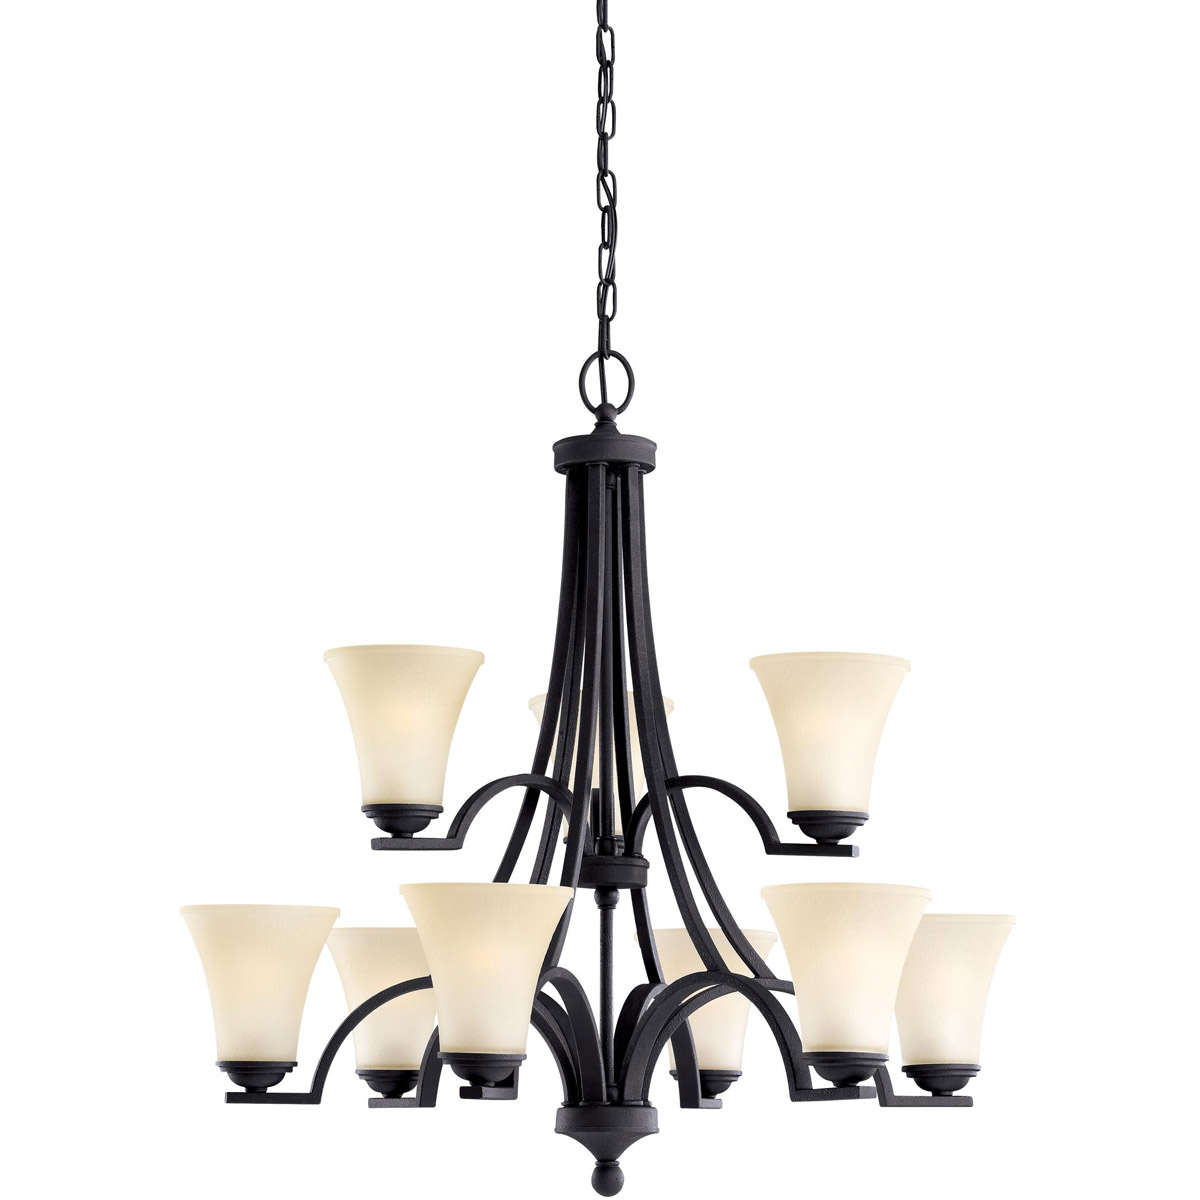 Sea Gull Lighting Somerton 9 Light Chandelier in Blacksmith 31377-839